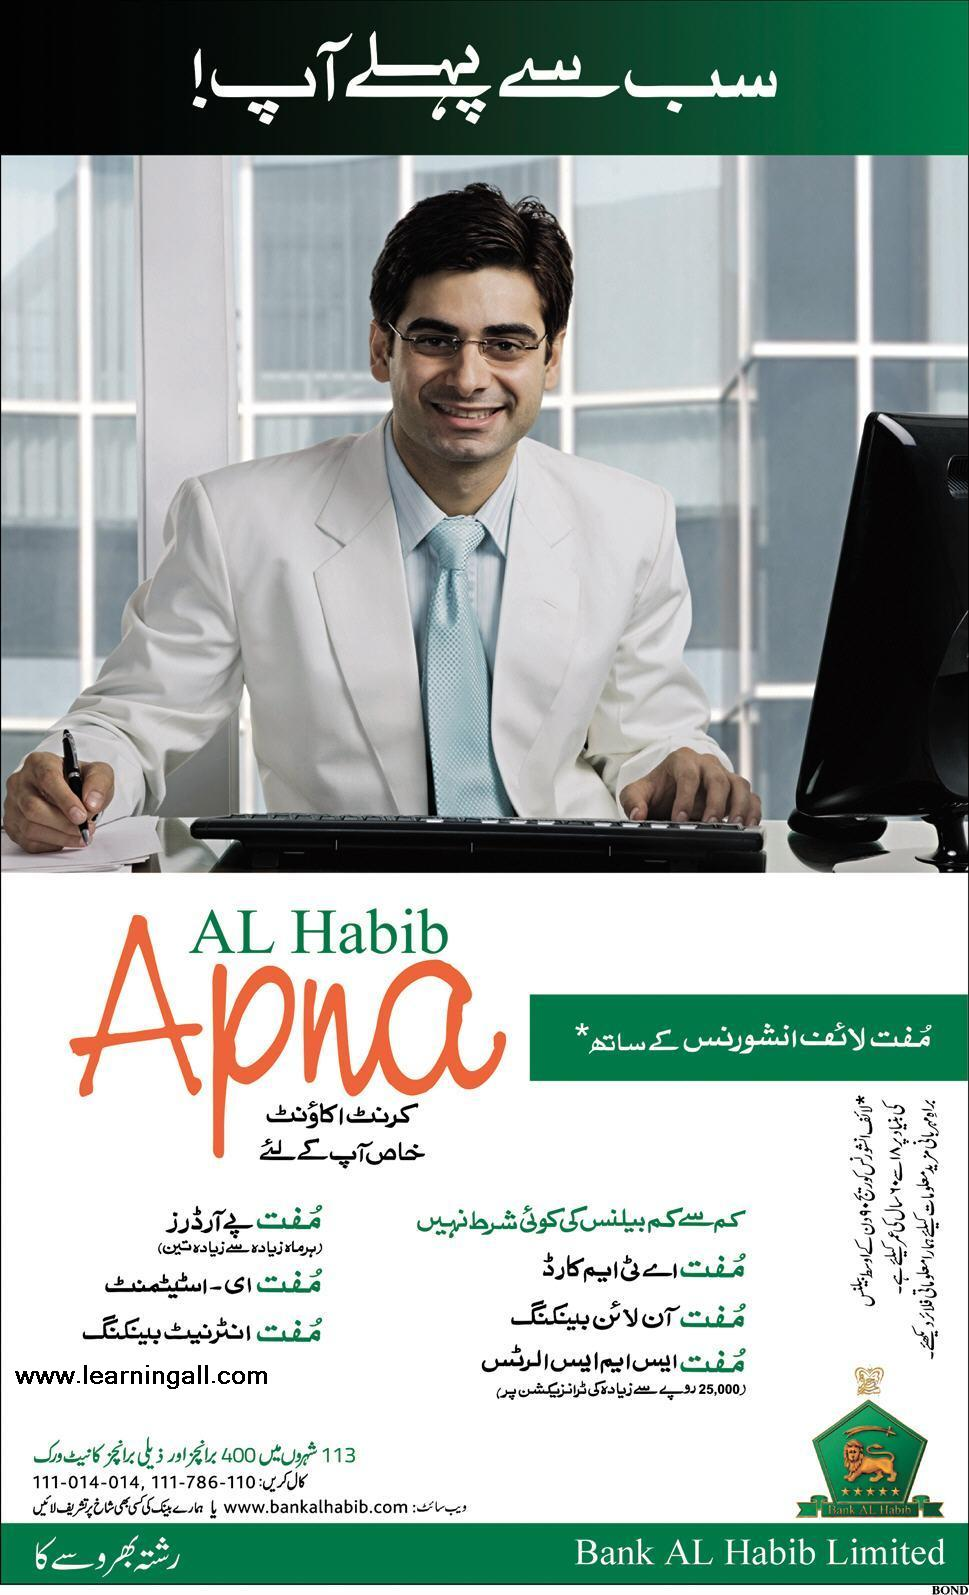 essay on bank al habib Bank al habib limited is coming to lums for their management trainee  test  consists of multiple-choice questions and an essay writing.